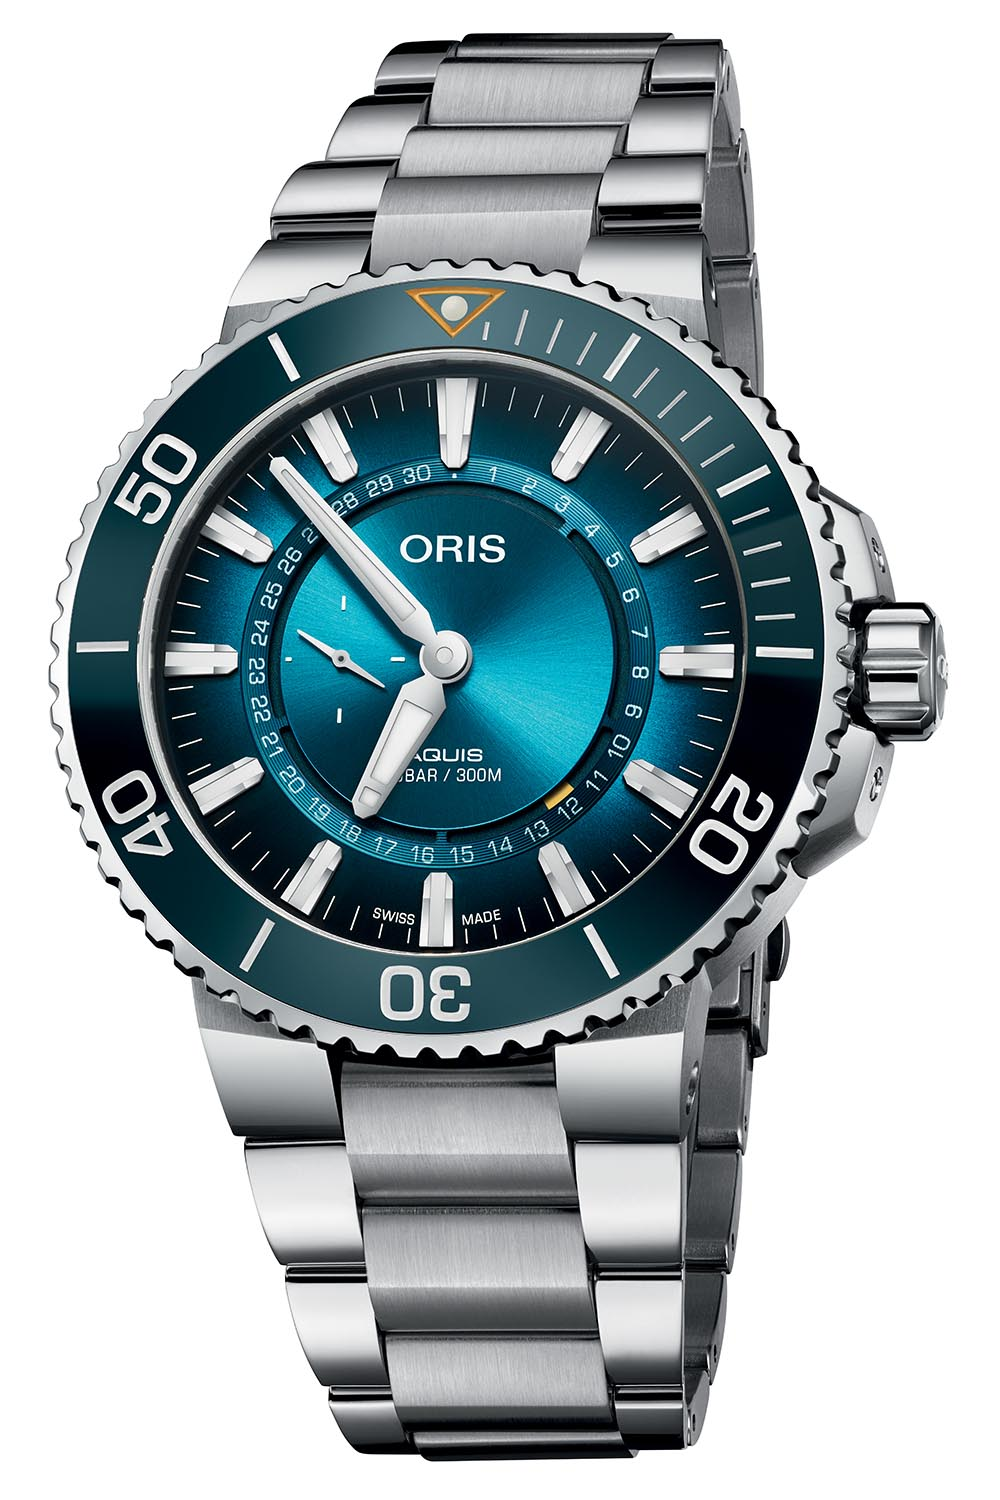 Oris Ocean Trilogy - Oris Great Barrier Reef Limited Edition III